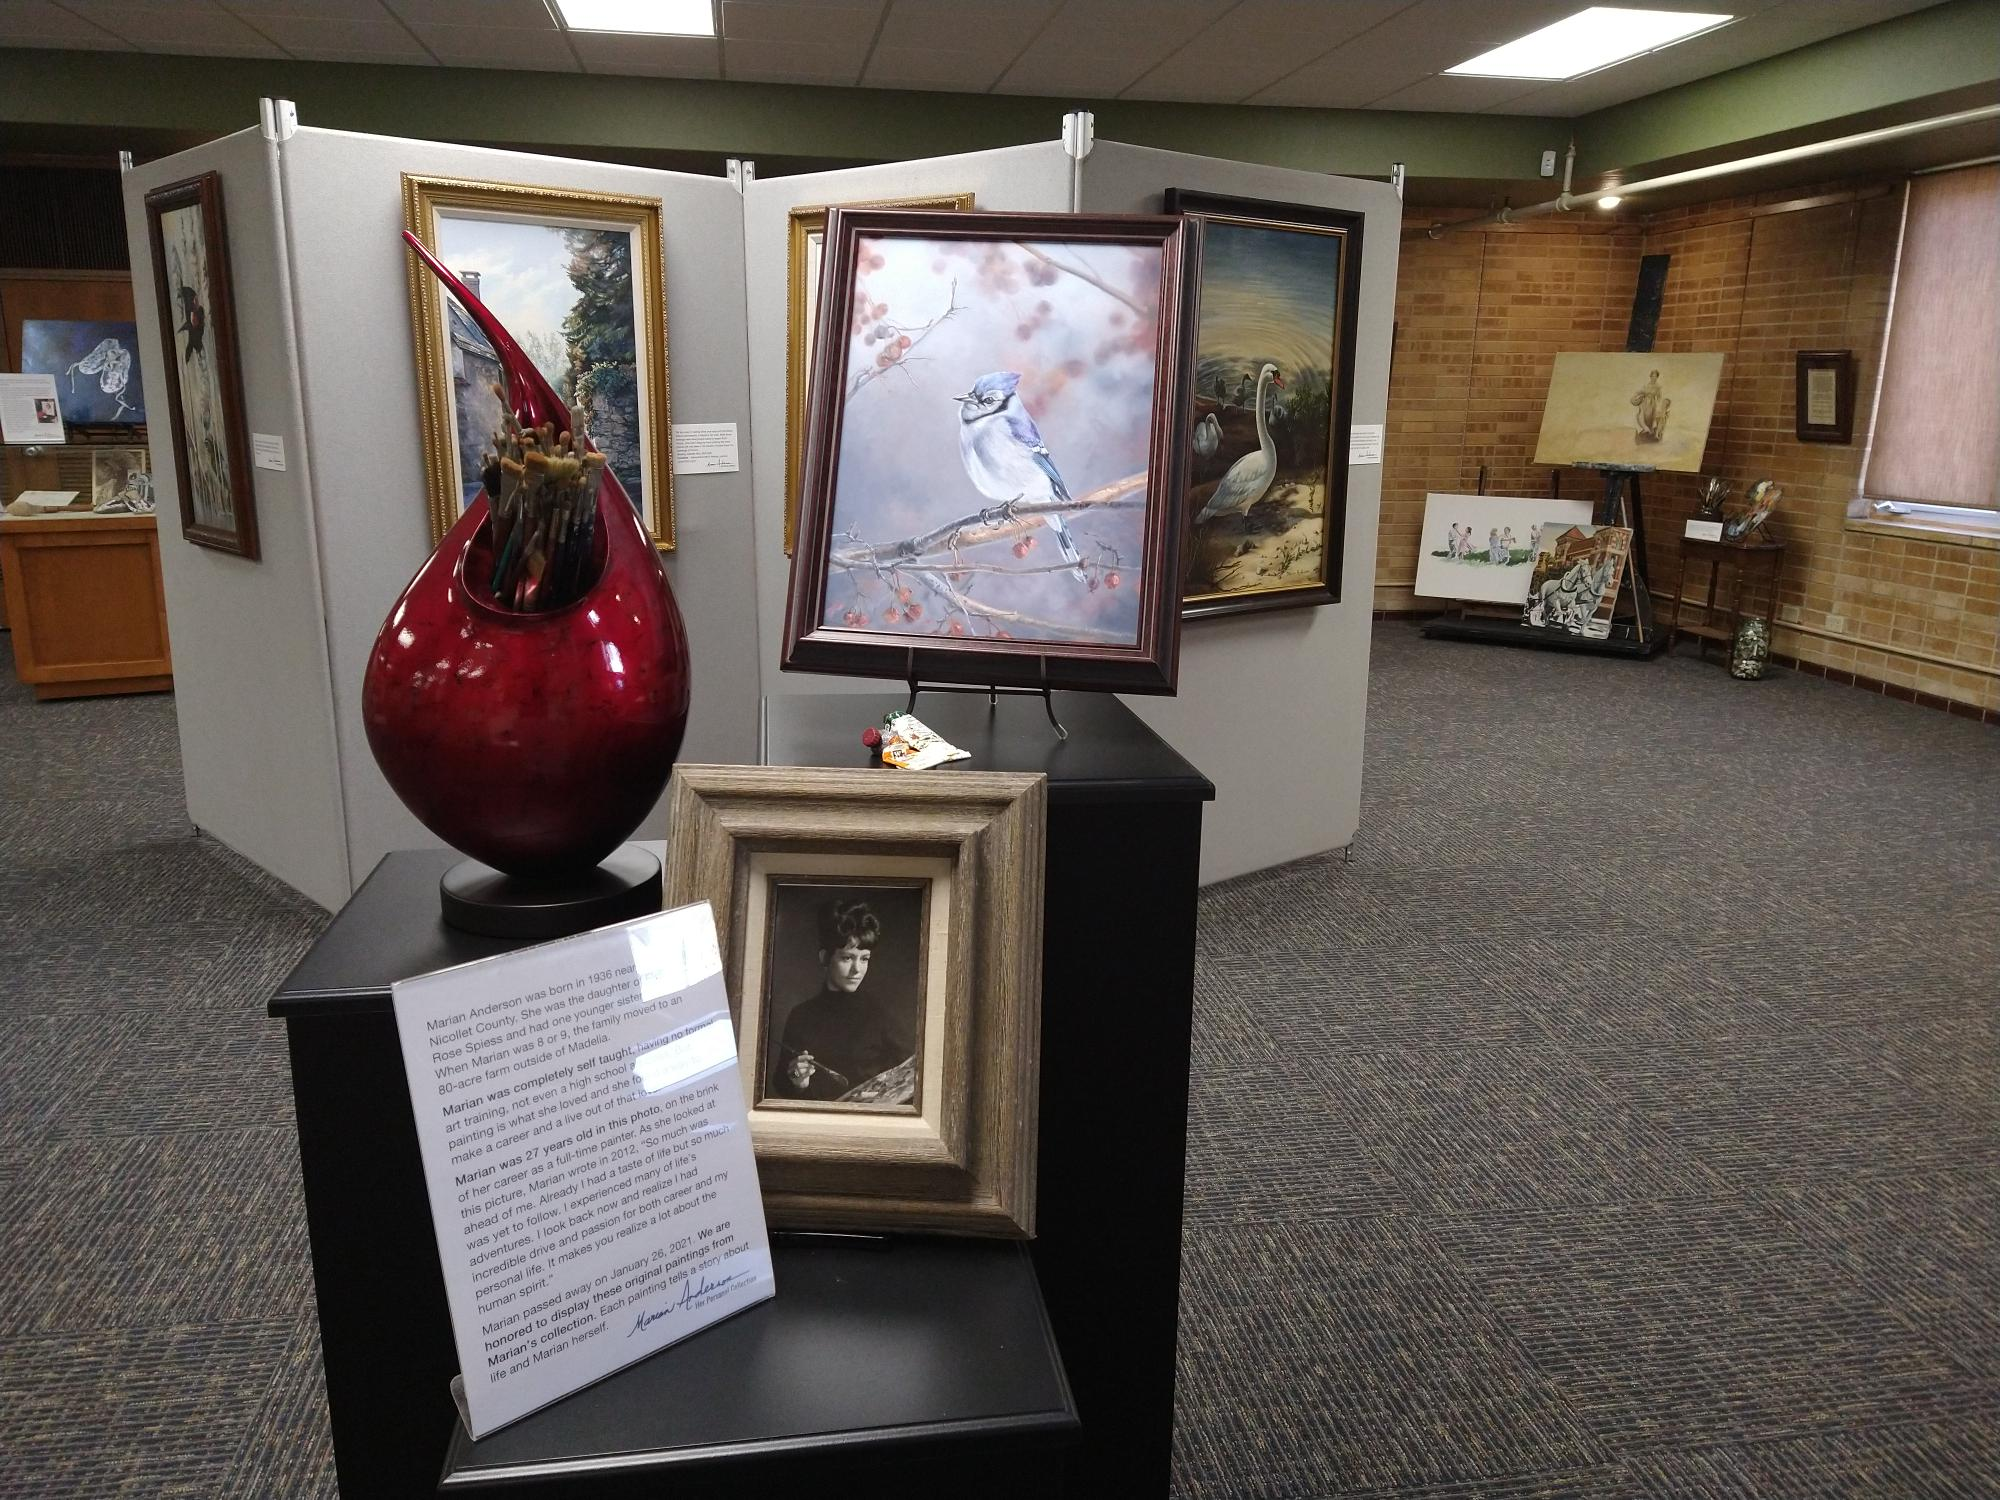 Temporary exhibit space set for Marian Anderson: Her Personal Collection with painting and paint brushes